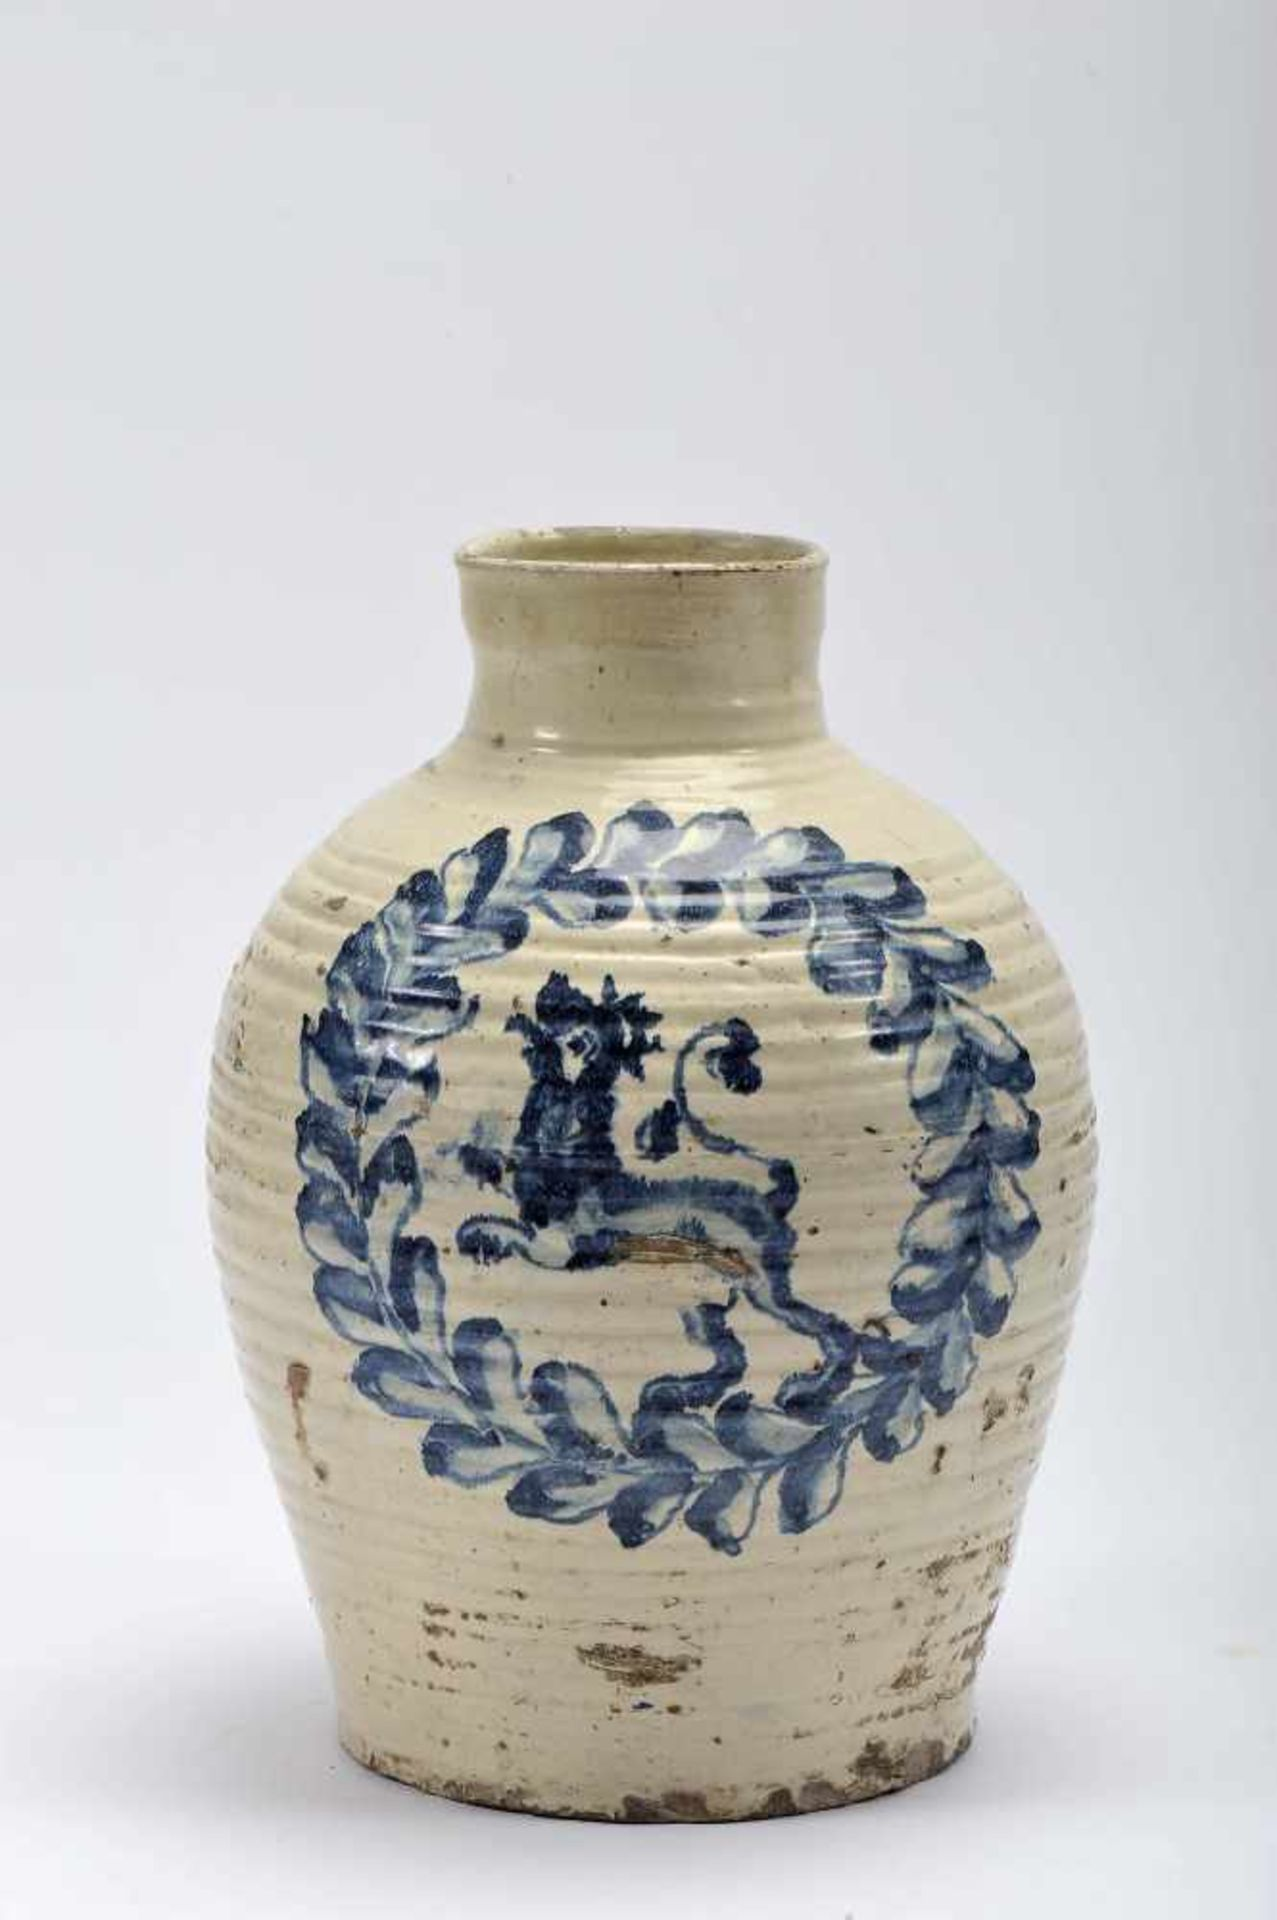 """Los 45 - A PotA Pot, faience, blue decoration """"Lion wrapped in garland"""", 17th/18th C., large restoration..."""